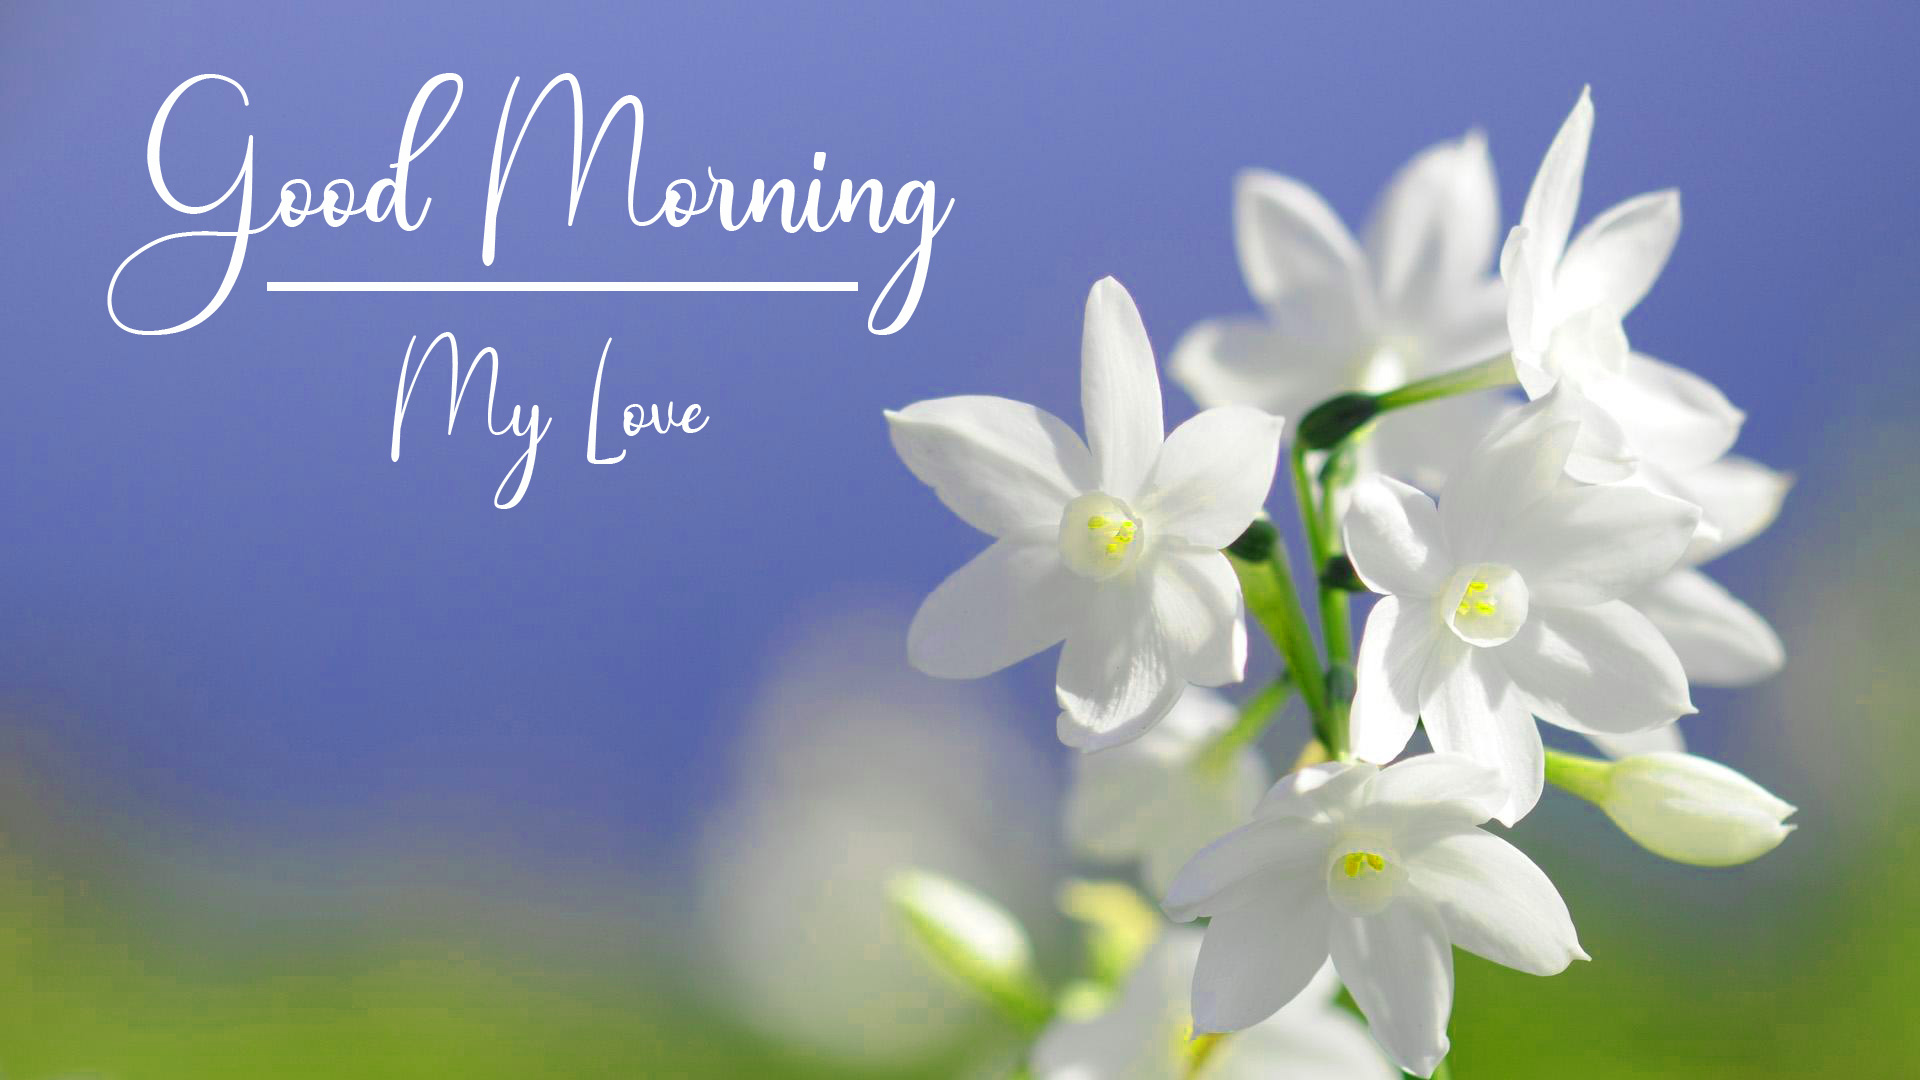 Good Morning Pics Wallpaper With Flower